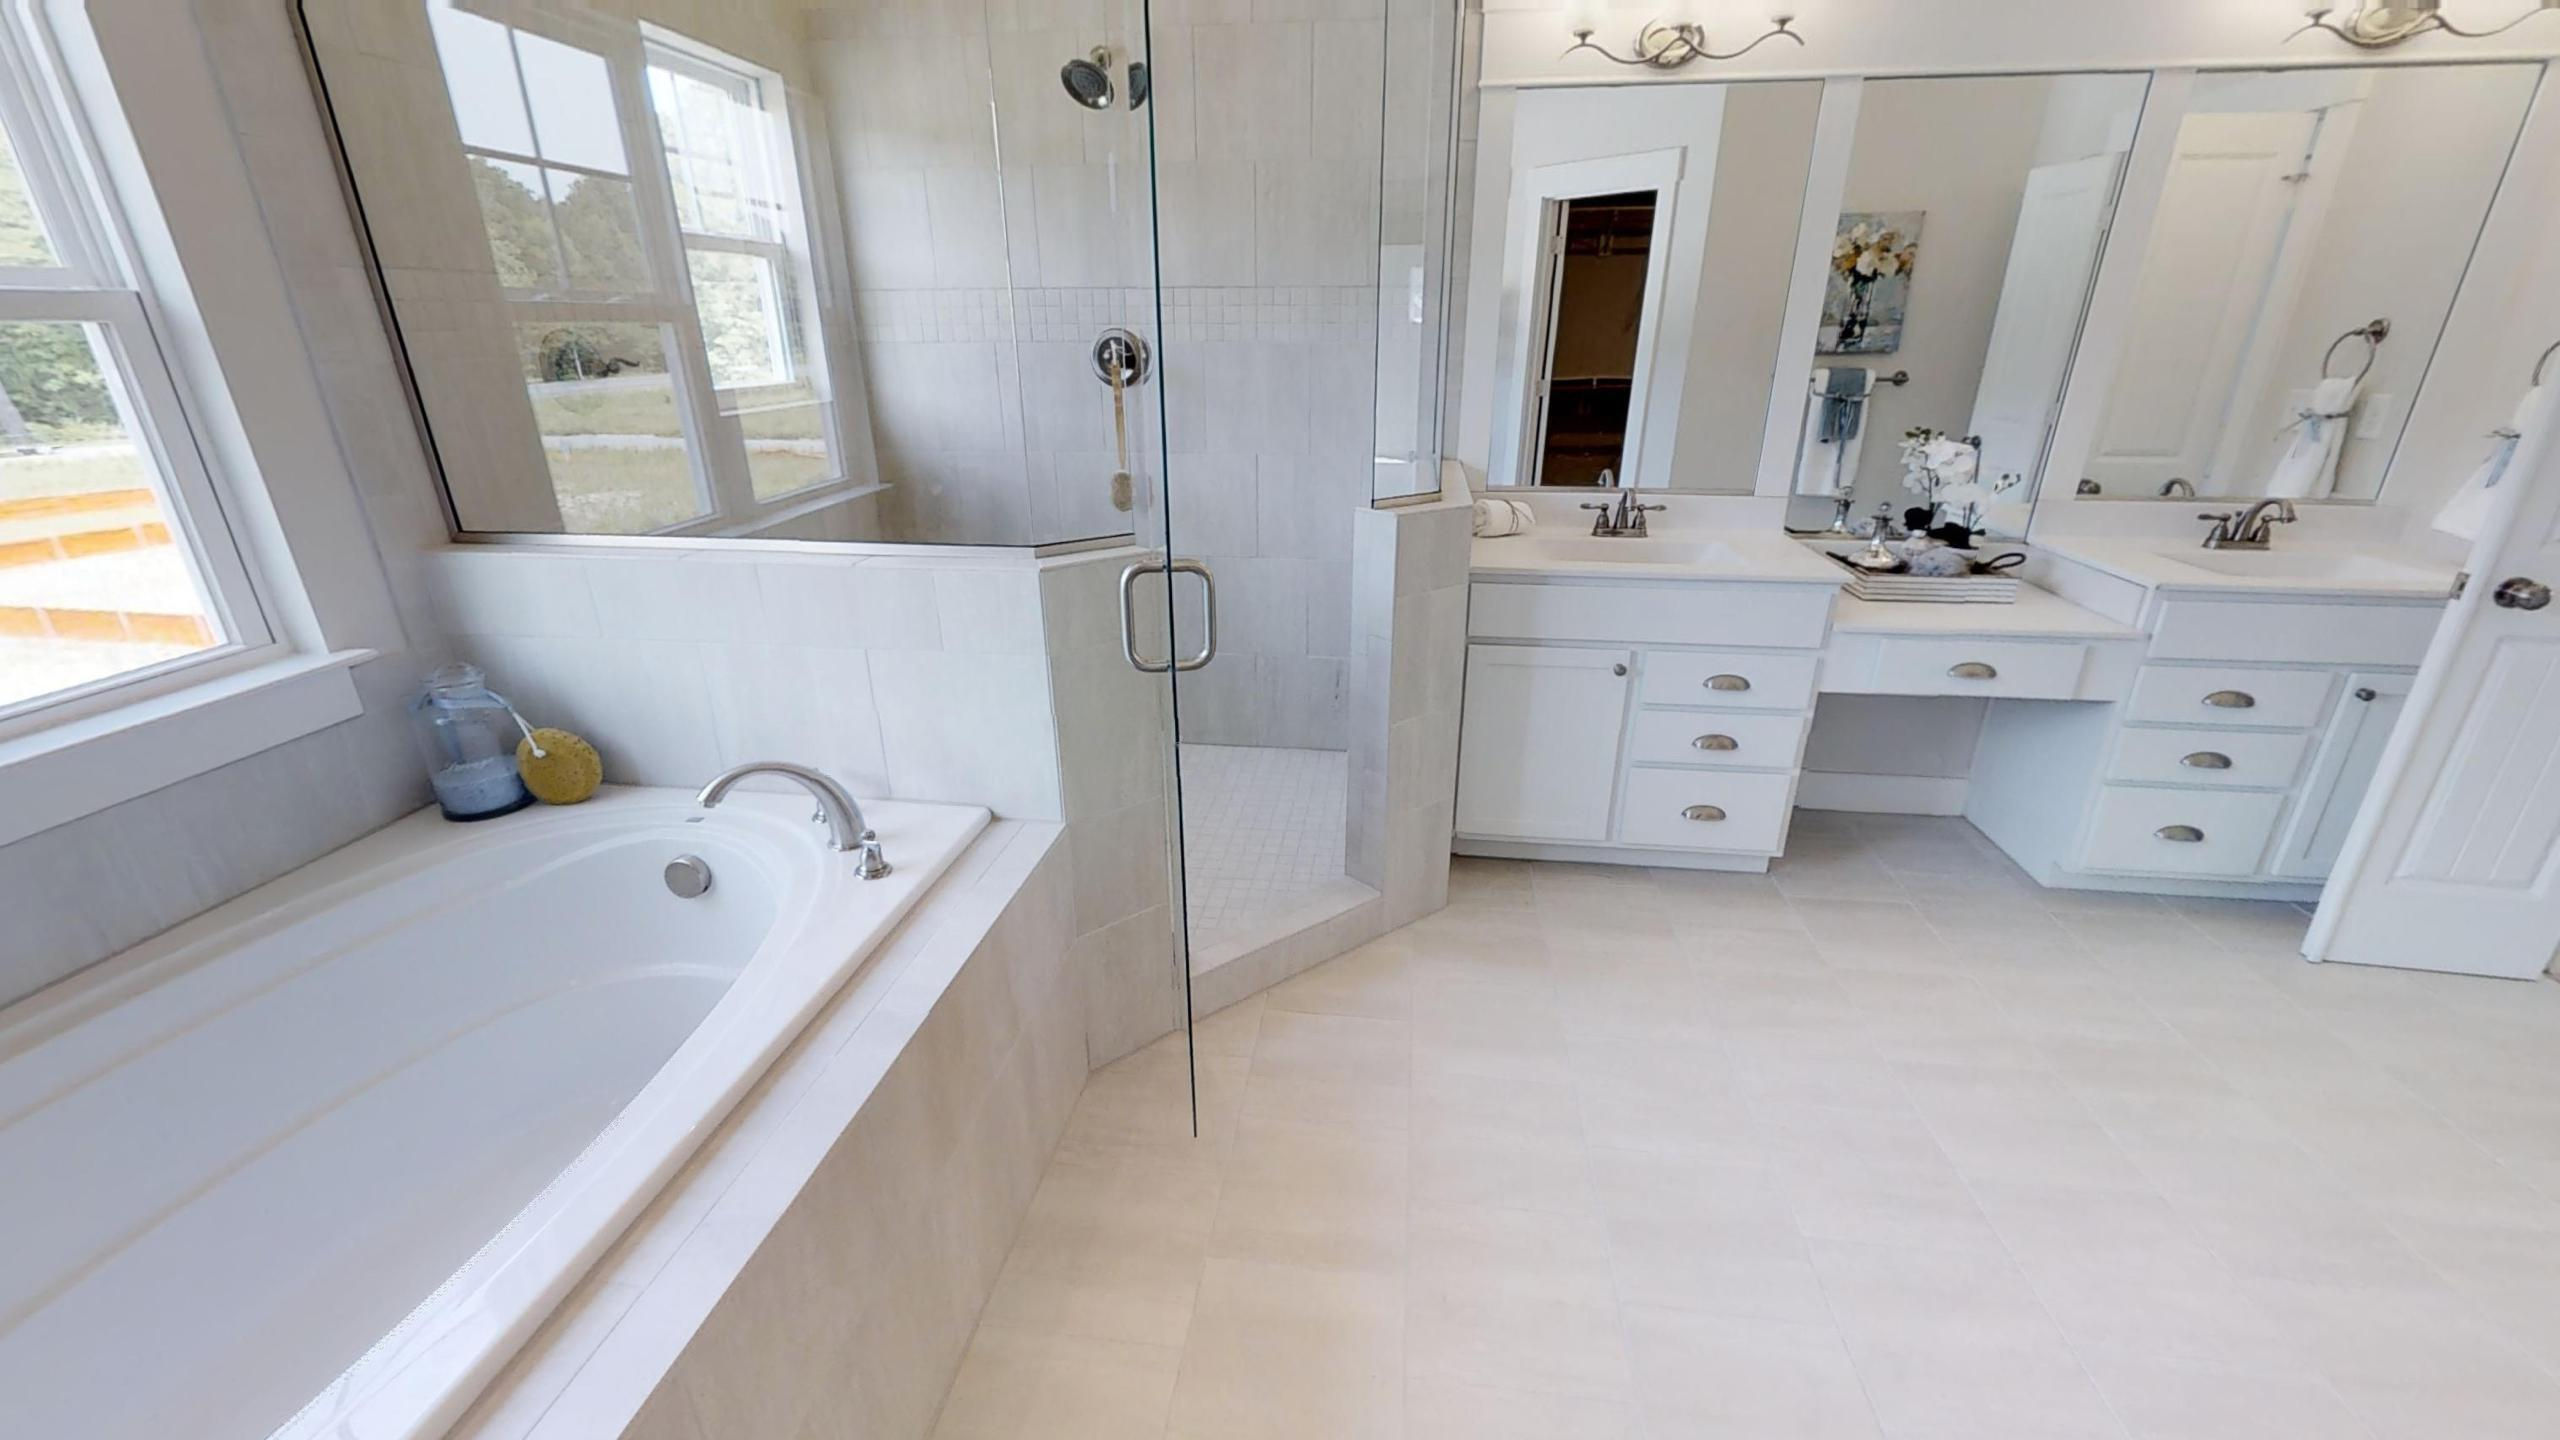 Bathroom featured in the Charlotte By Stephen Alexander Homes in Outer Banks, NC